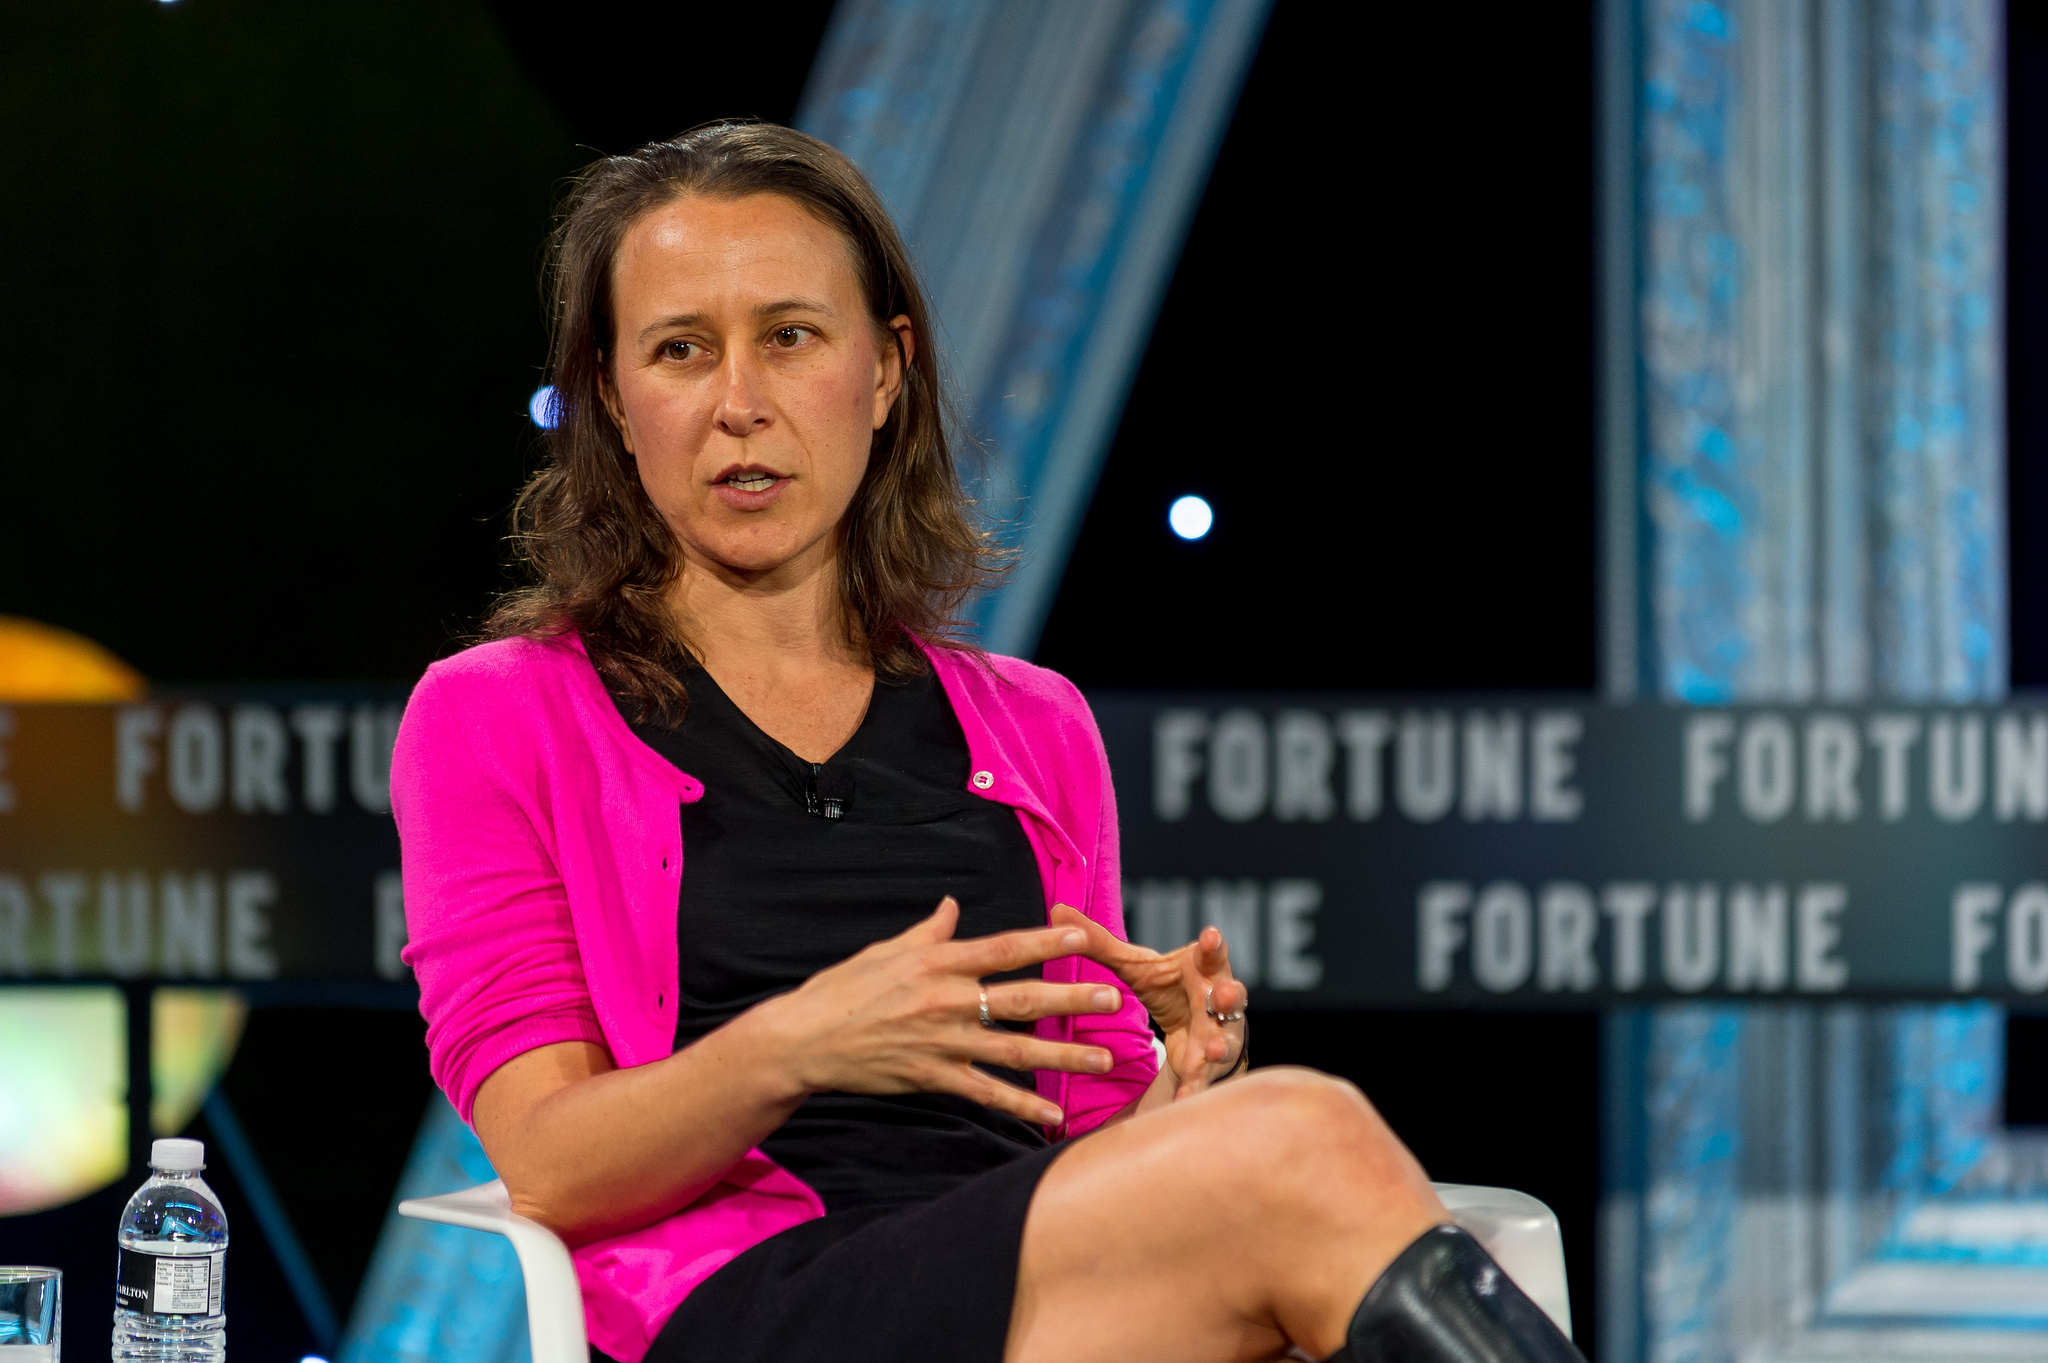 23andMe founder Anne Wojcicki at Fortune's MPW Next Gen 2016 conference.